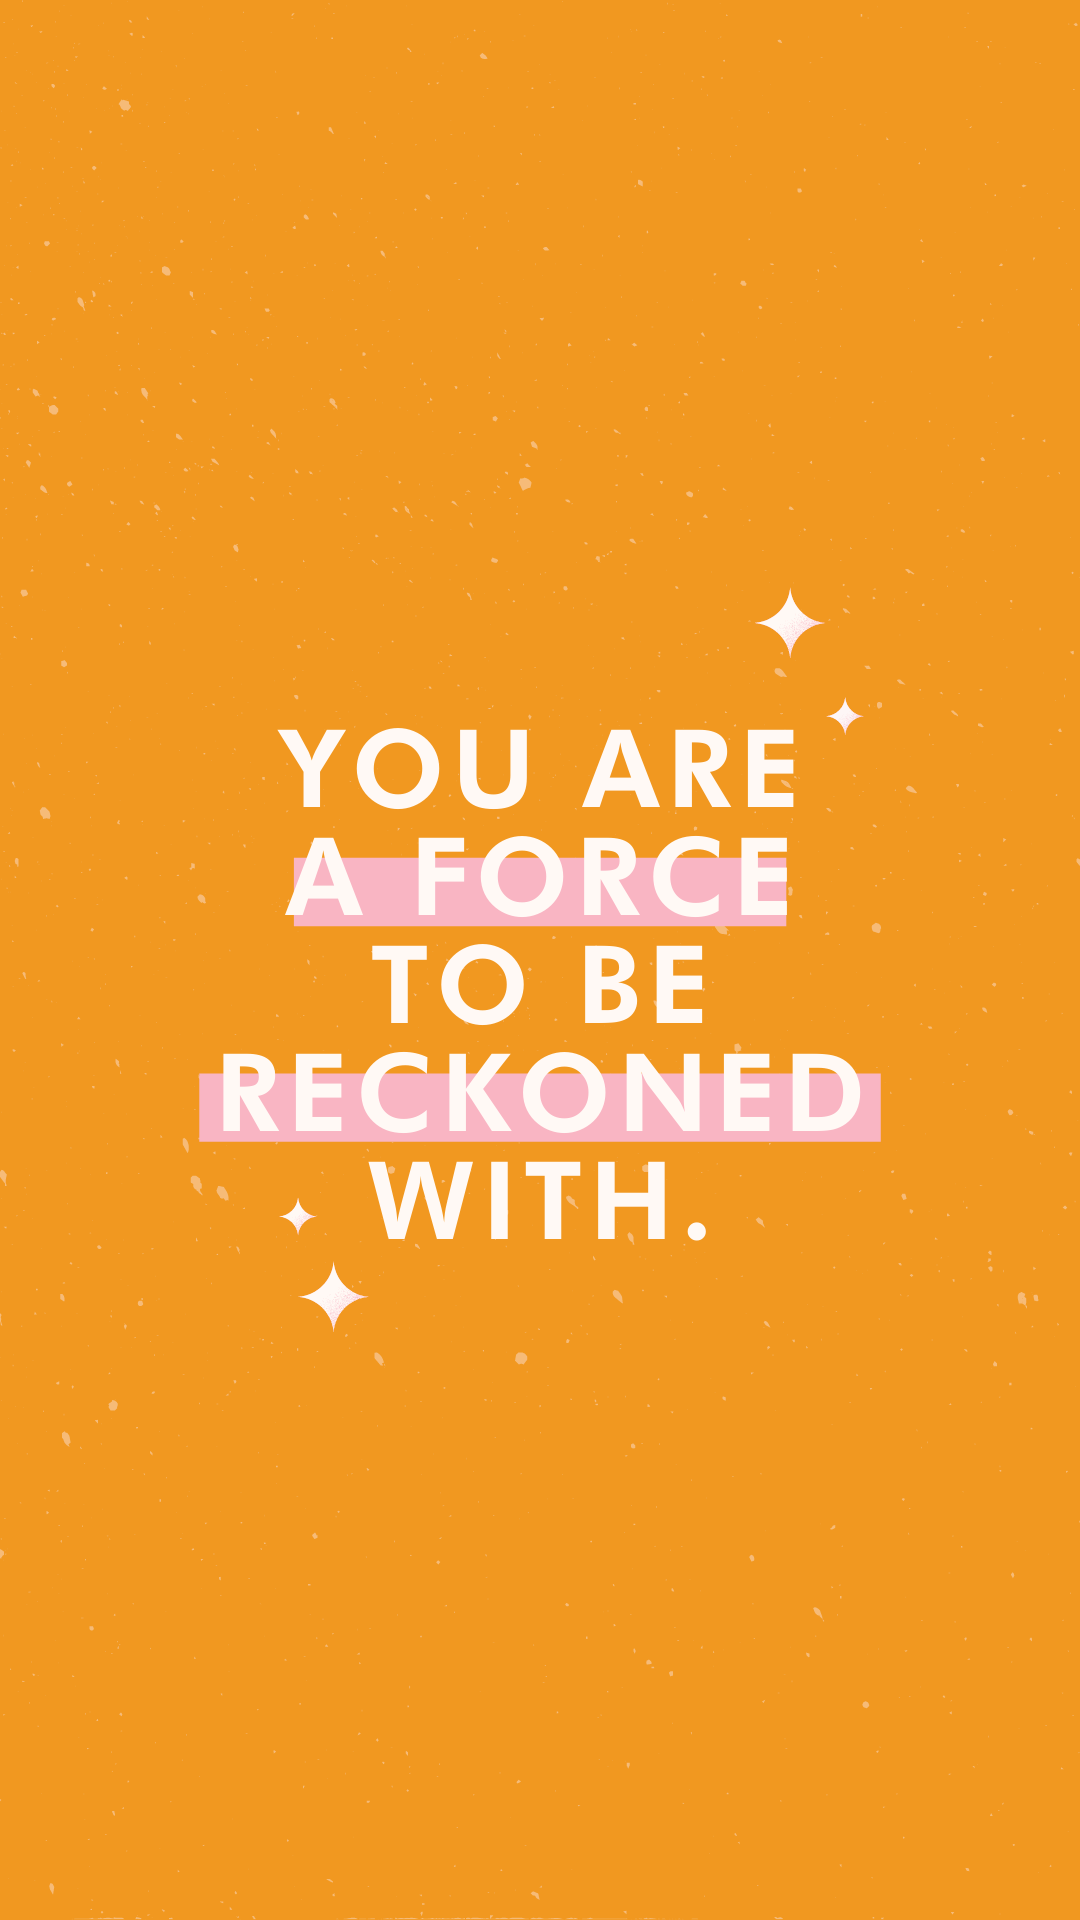 You are a Force to be Reckoned with